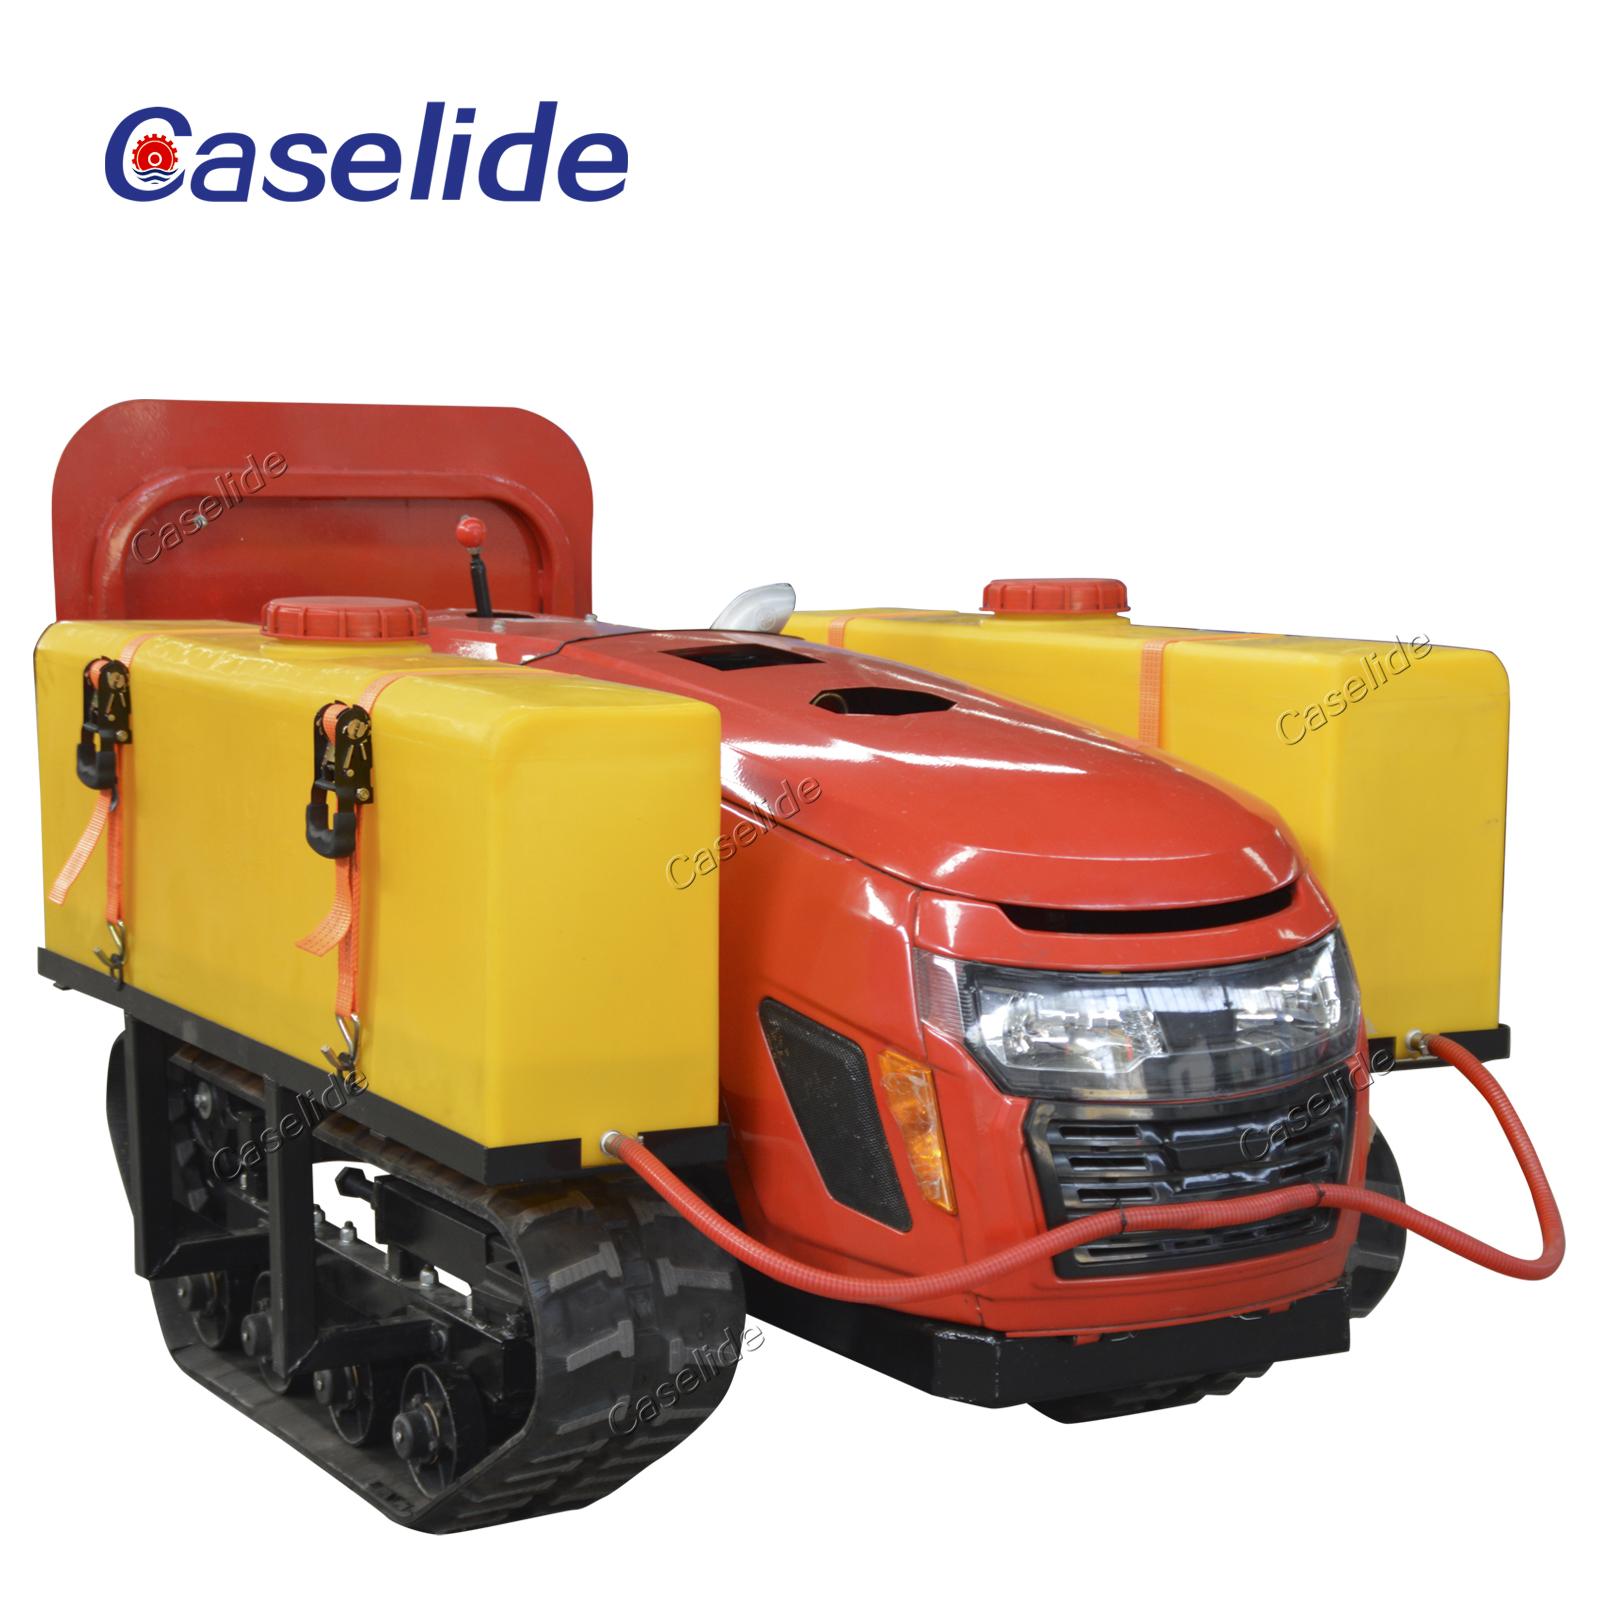 Small agricultural crawler diesel pesticide sprayer